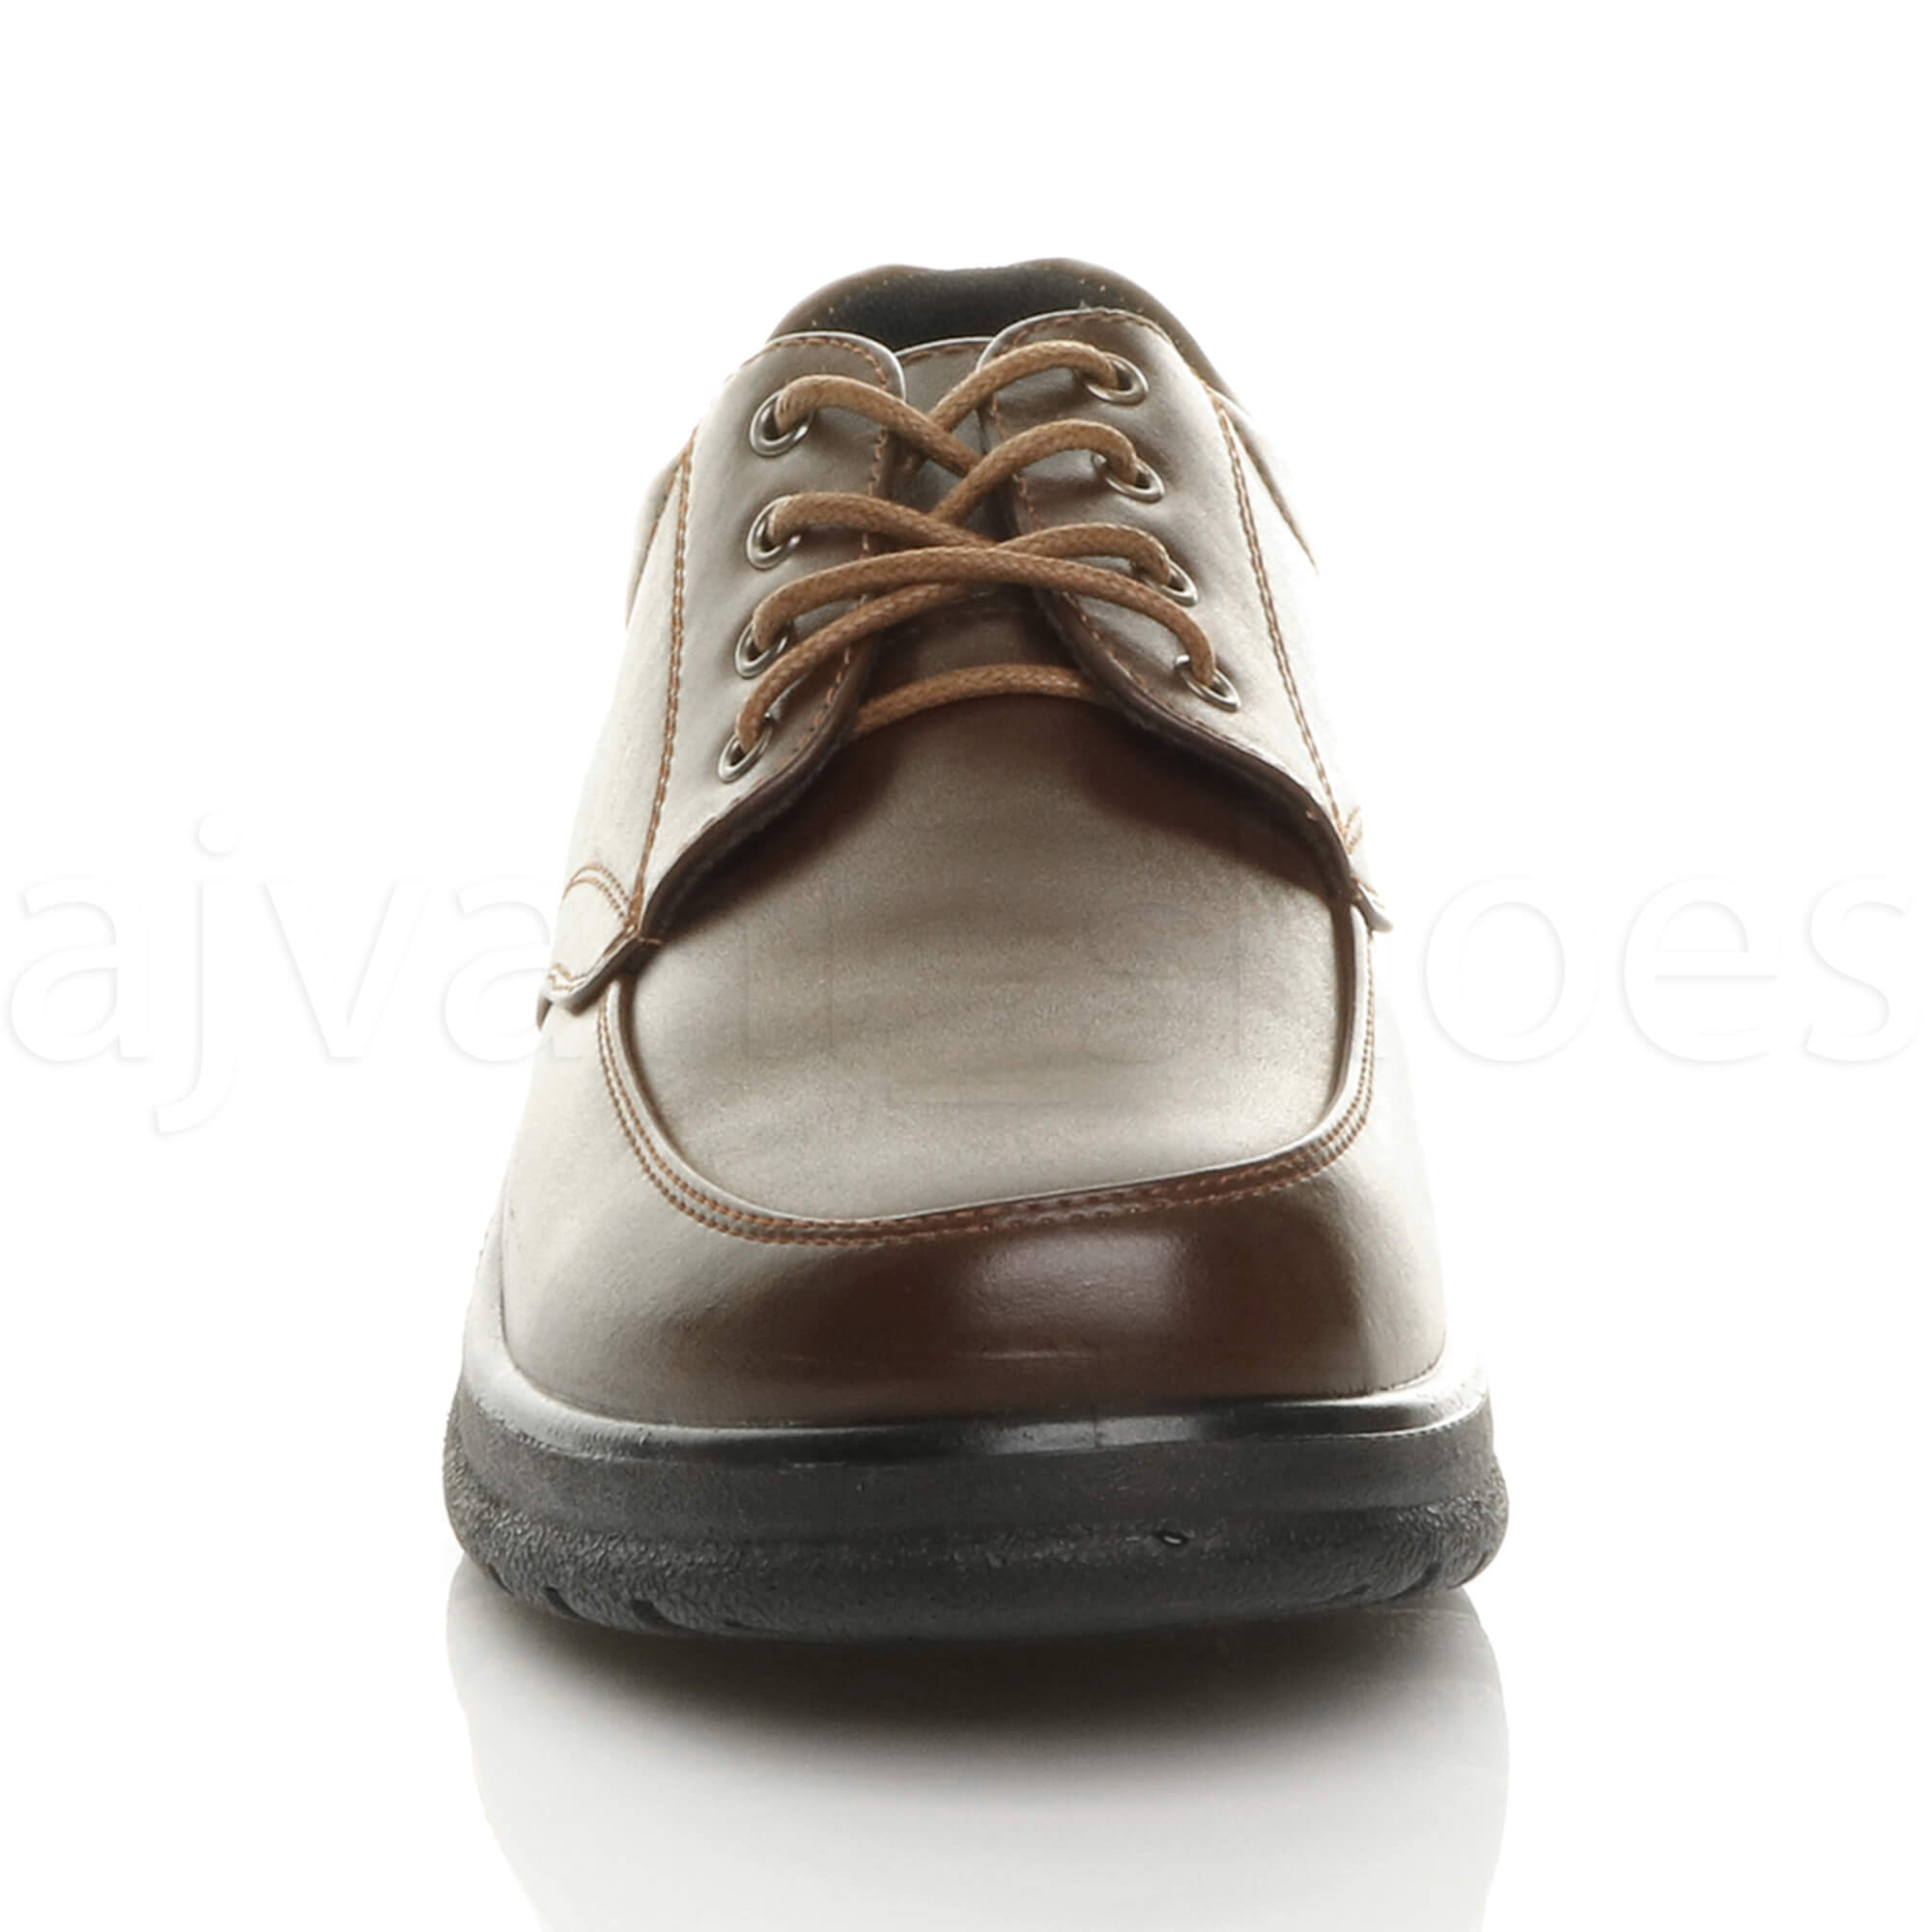 MENS-LACE-UP-CASUAL-MEMORY-FOAM-INSOLE-COMFORT-CUSHIONED-WORK-SHOES-SIZE thumbnail 15